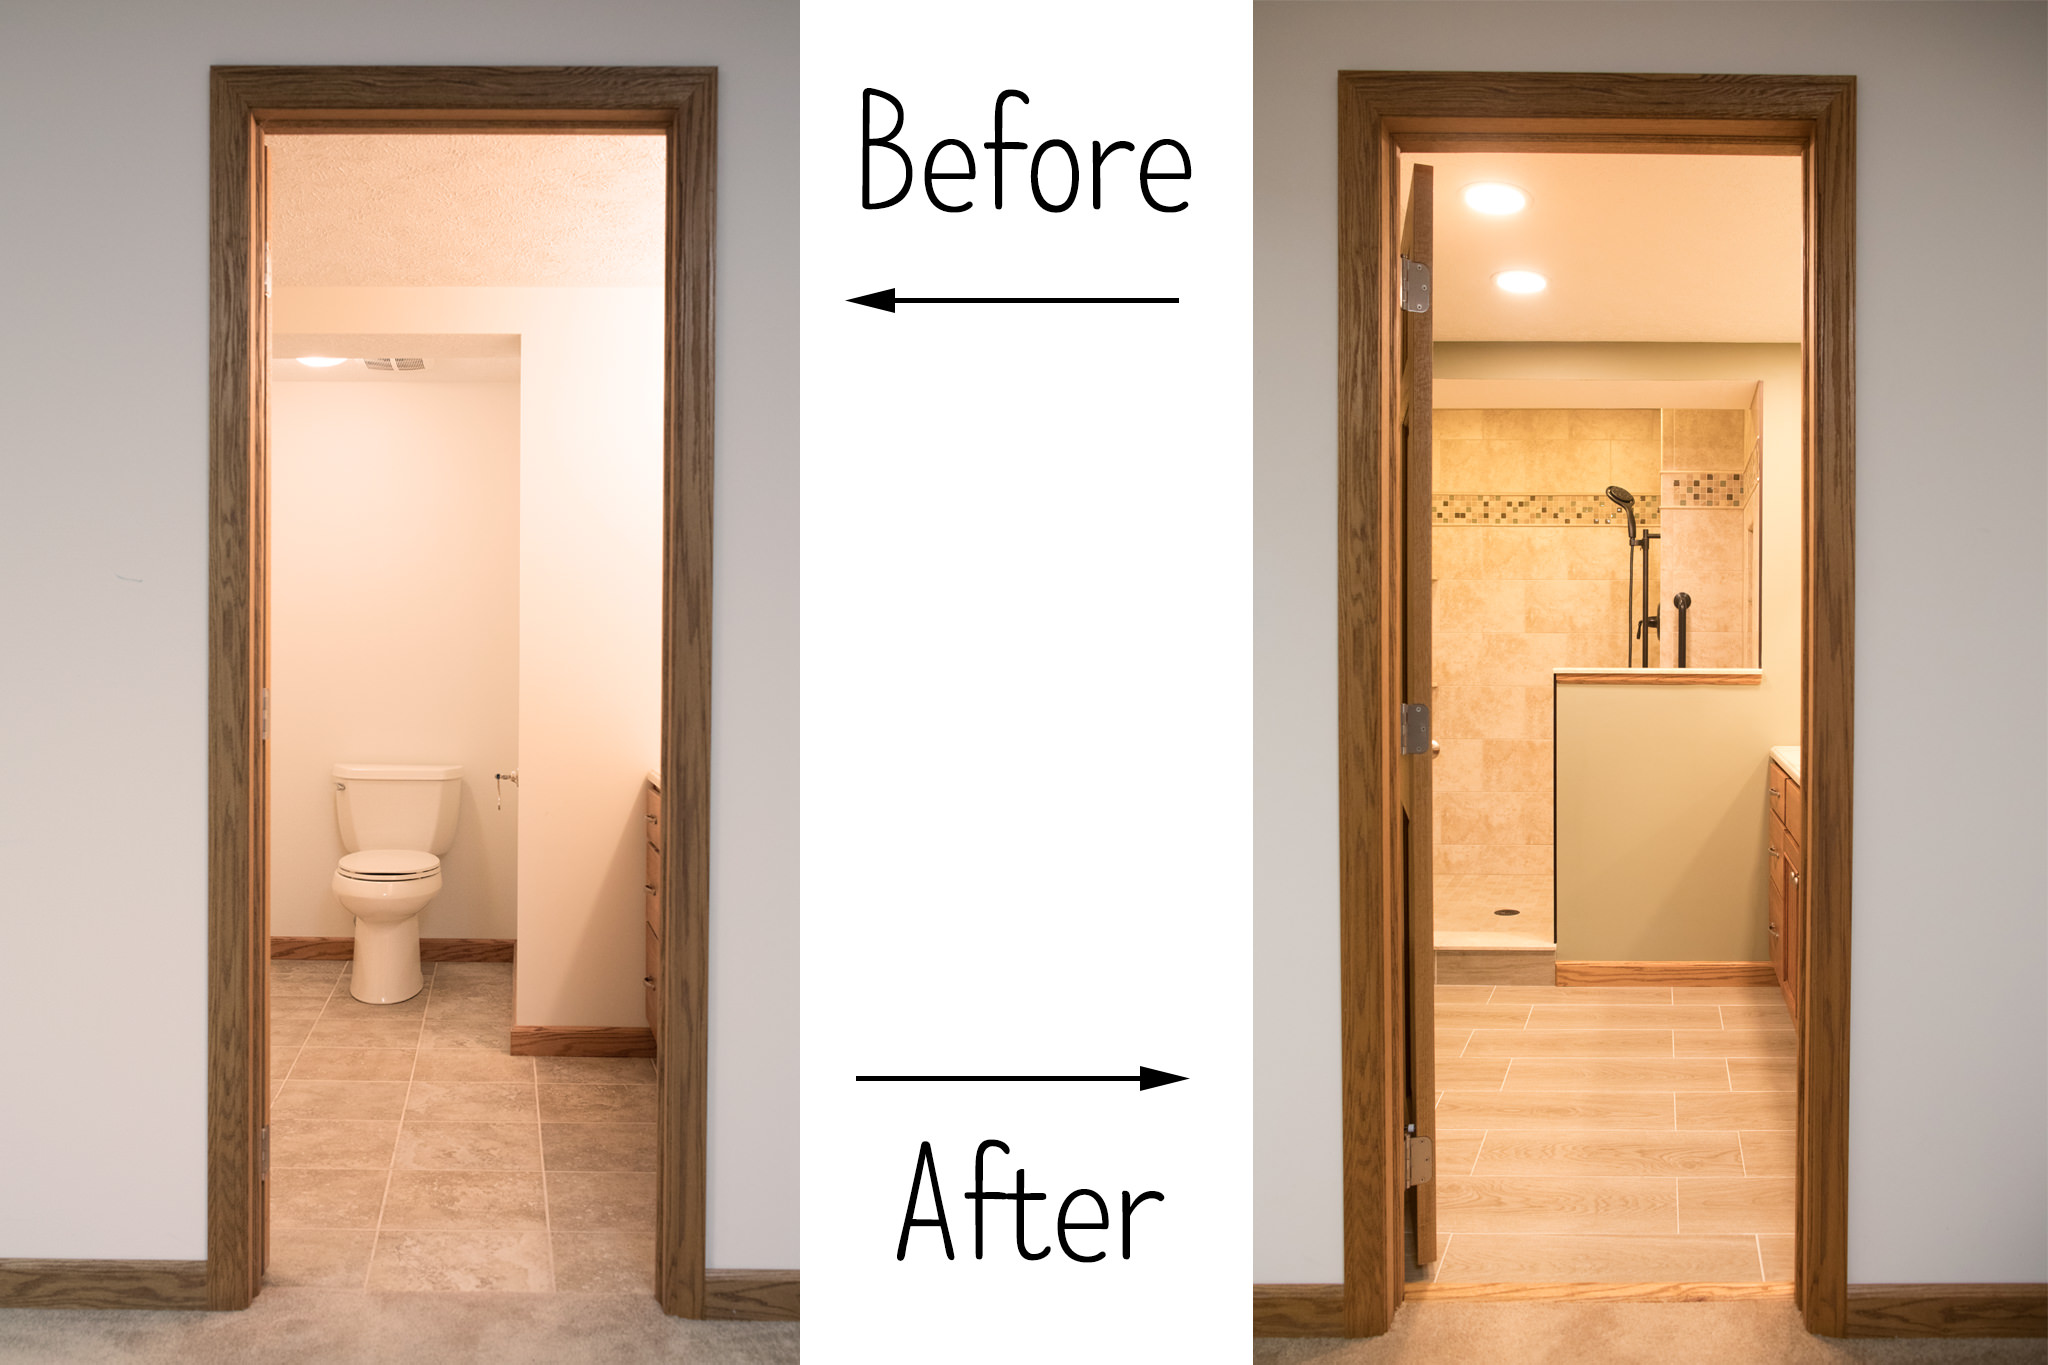 Bathroom Remodel Order Of Operations the bathroom remodel: a study of the emotional effects | composed